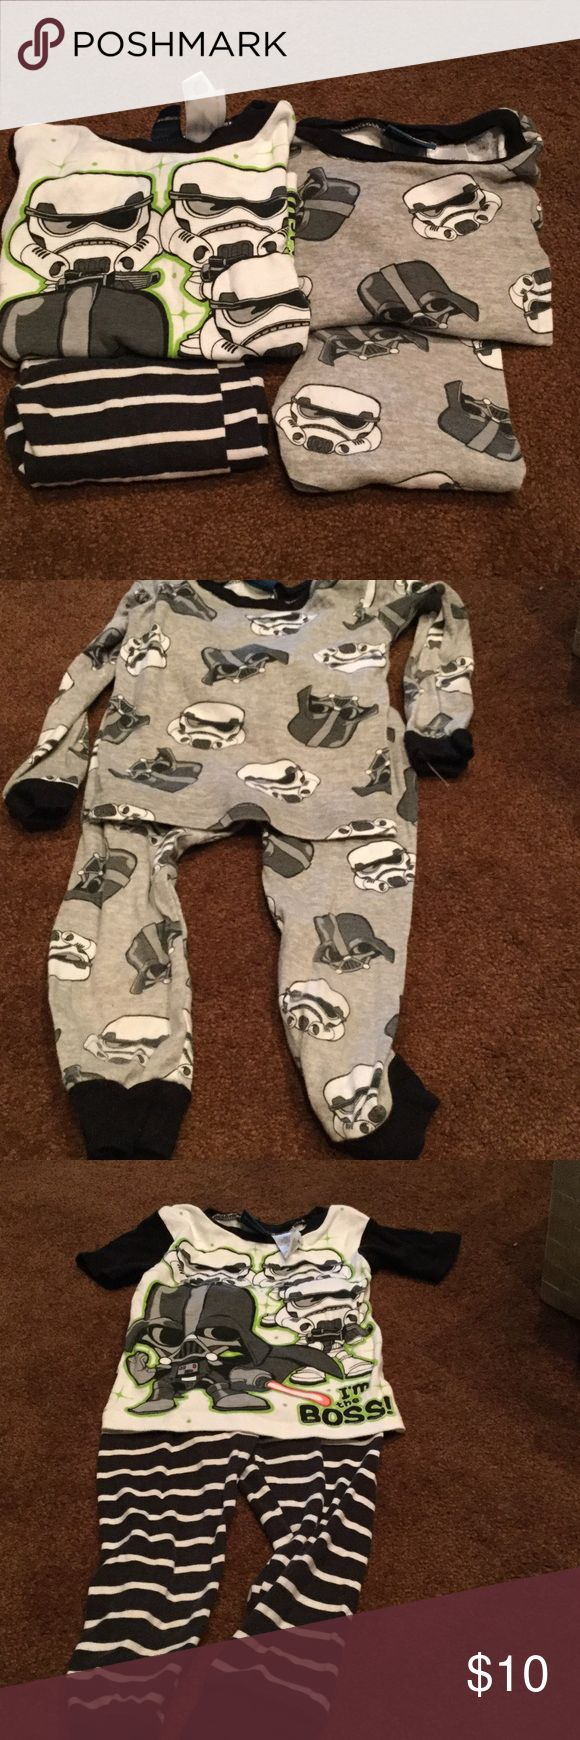 2 Pair of Star Wars pjs 2 pairs of pajamas. One is short sleeve. Good condition. No holes or stains. Smoke free home Star Wars Pajamas Pajama Sets